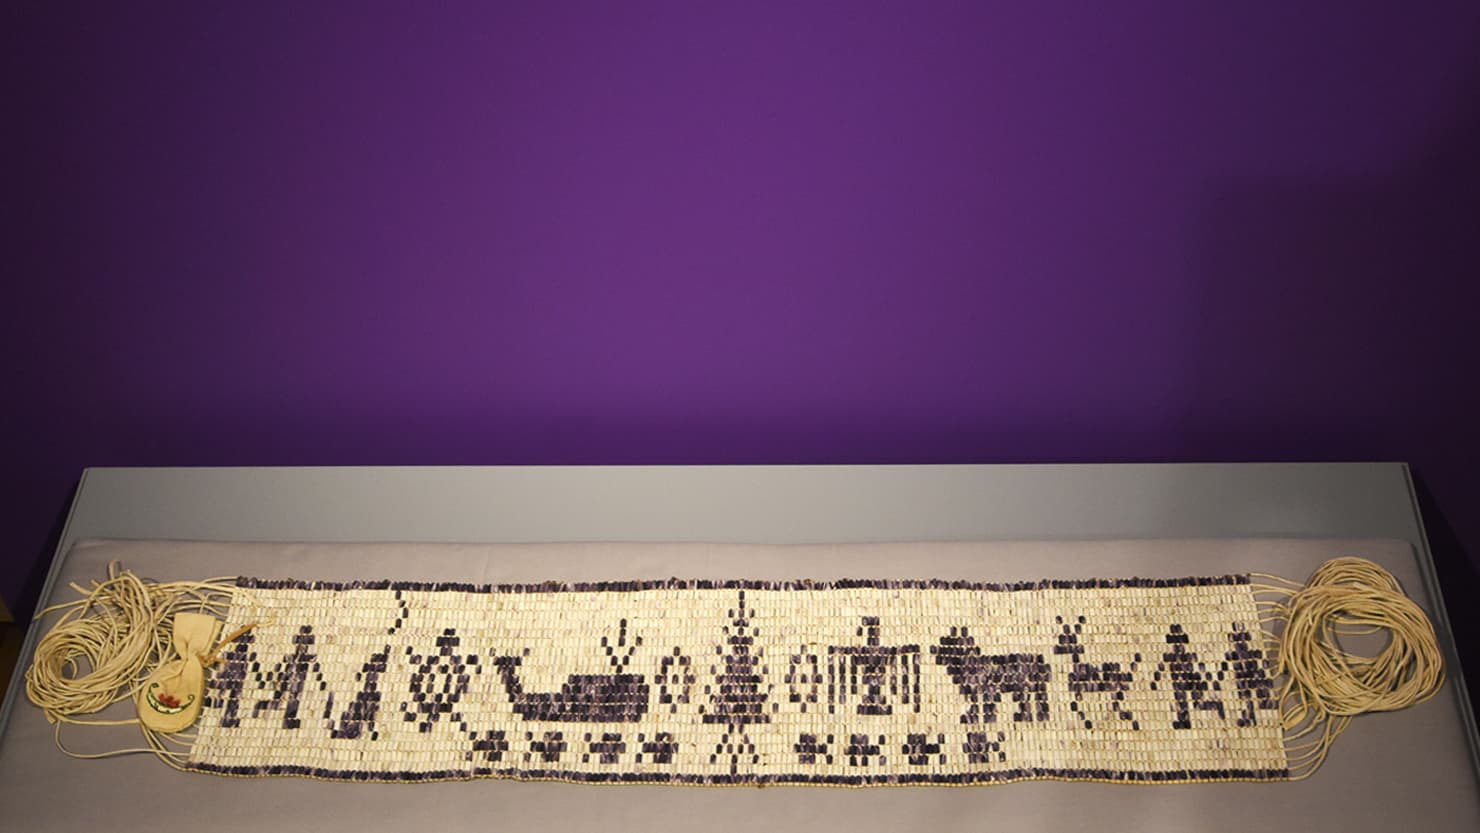 The new wampum belt on display at The Box